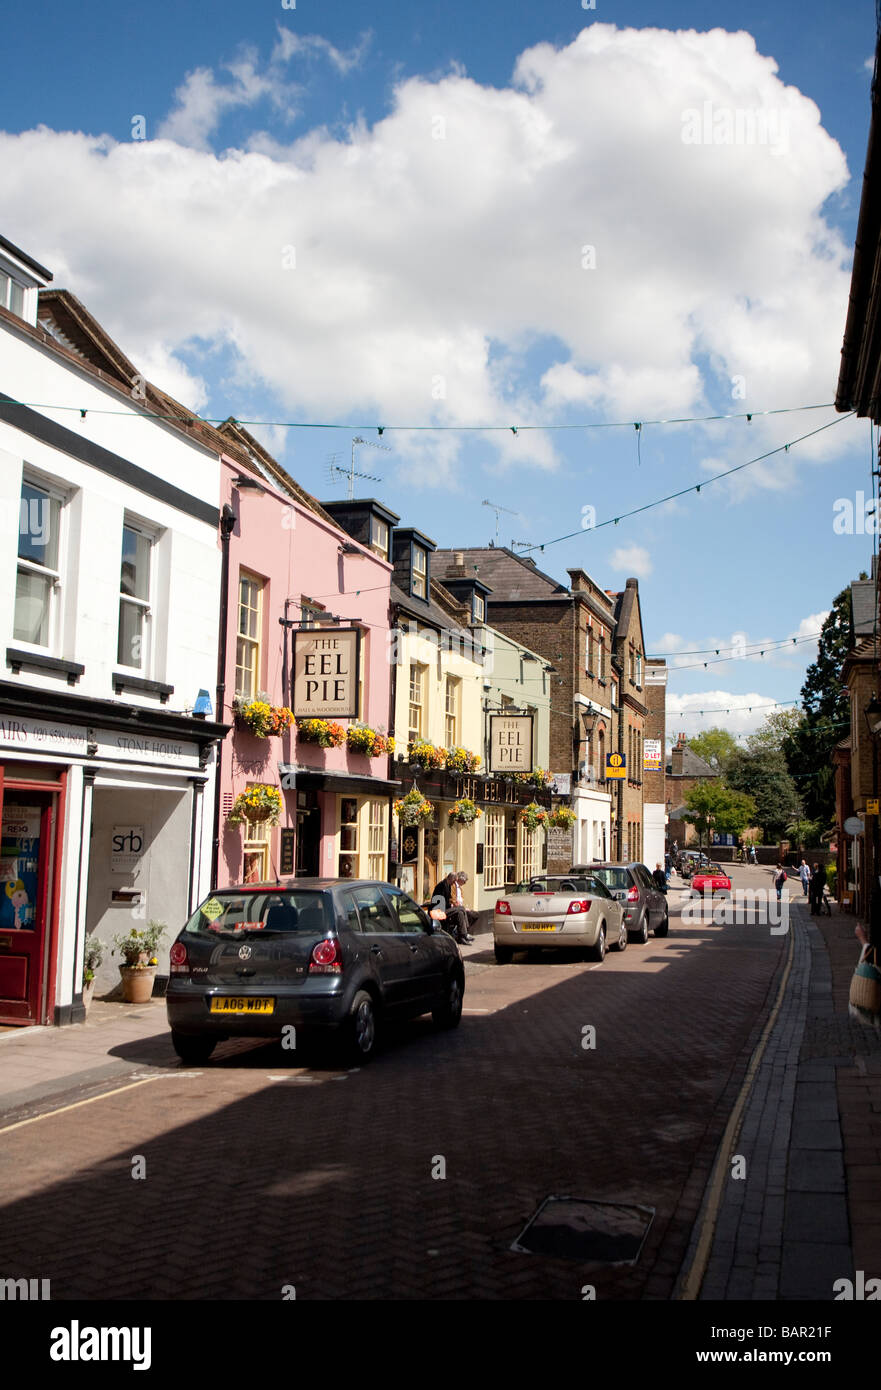 the pedestrianised Church Street of Twickenham London and The Eel Pie pub - Stock Image